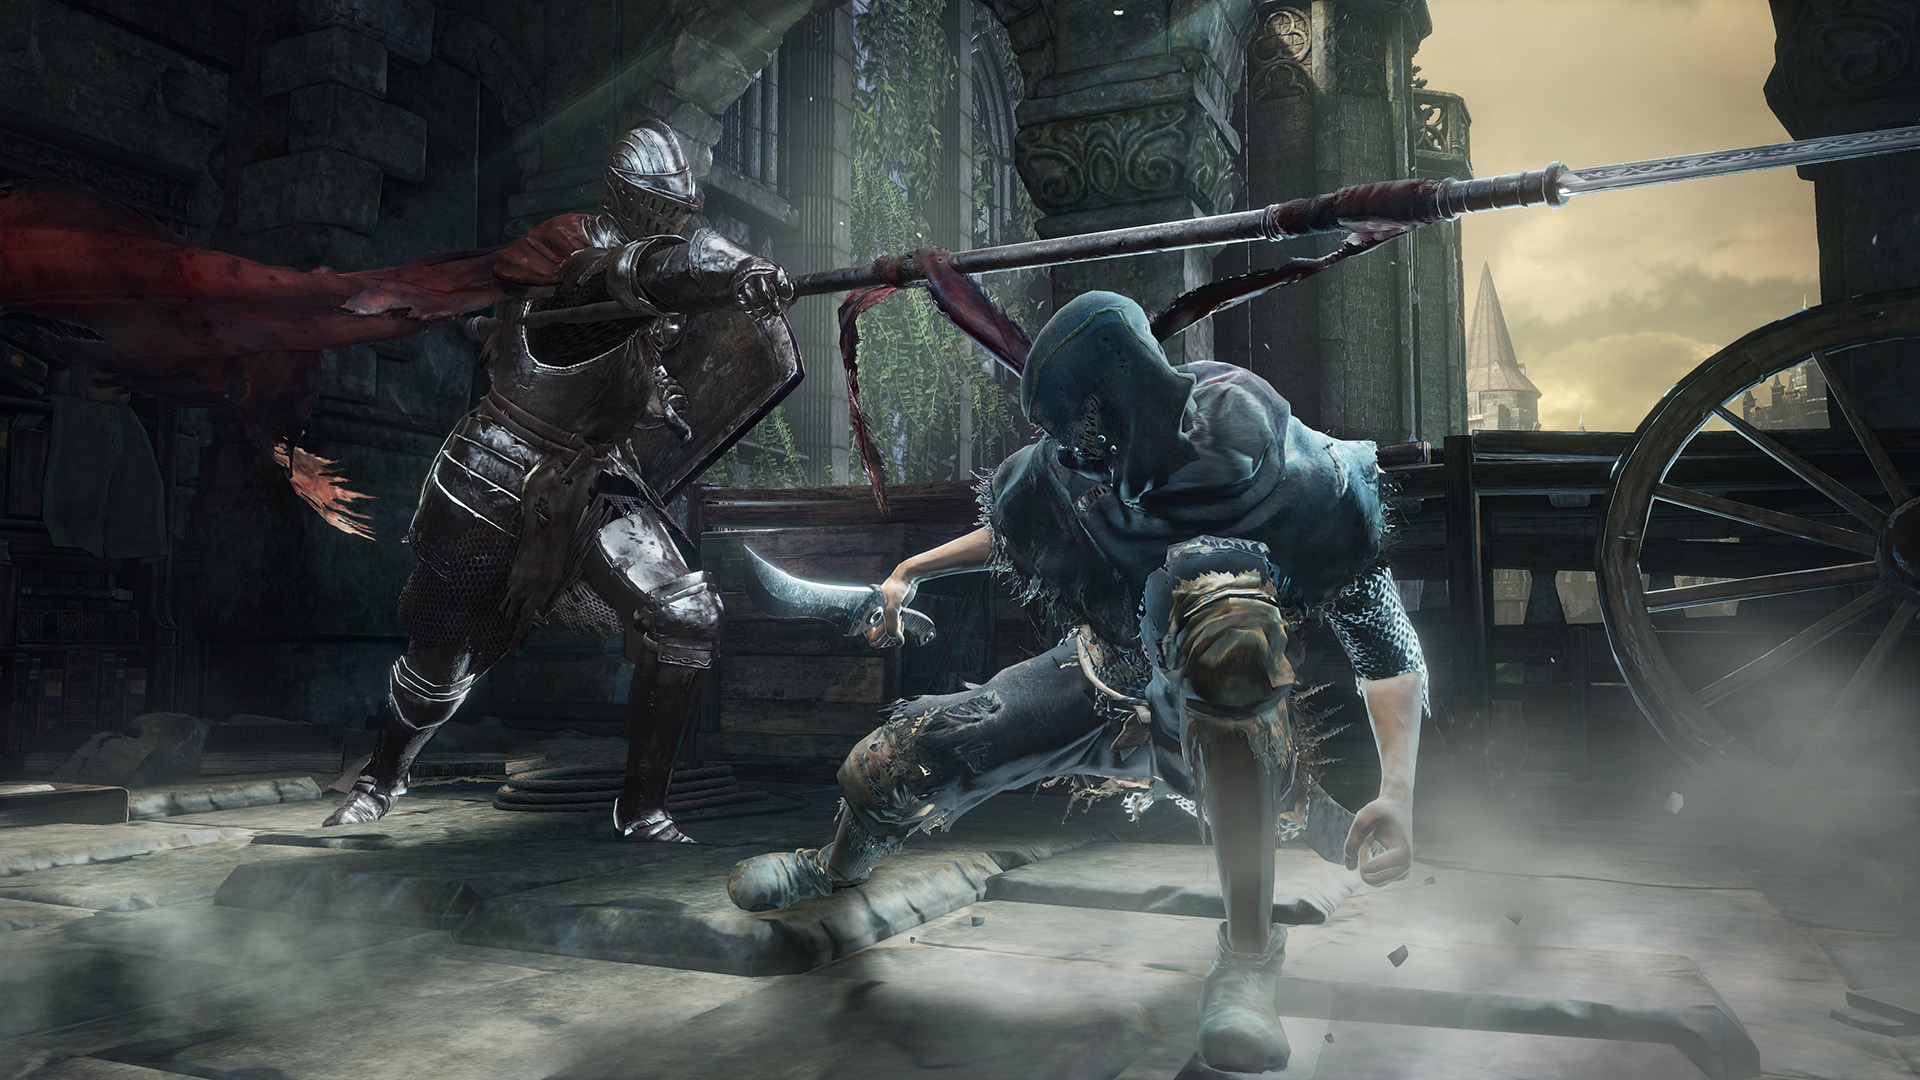 Dark Souls 3 can be downloaded from Japan, but Bandai Namco warns it's 'not complete'